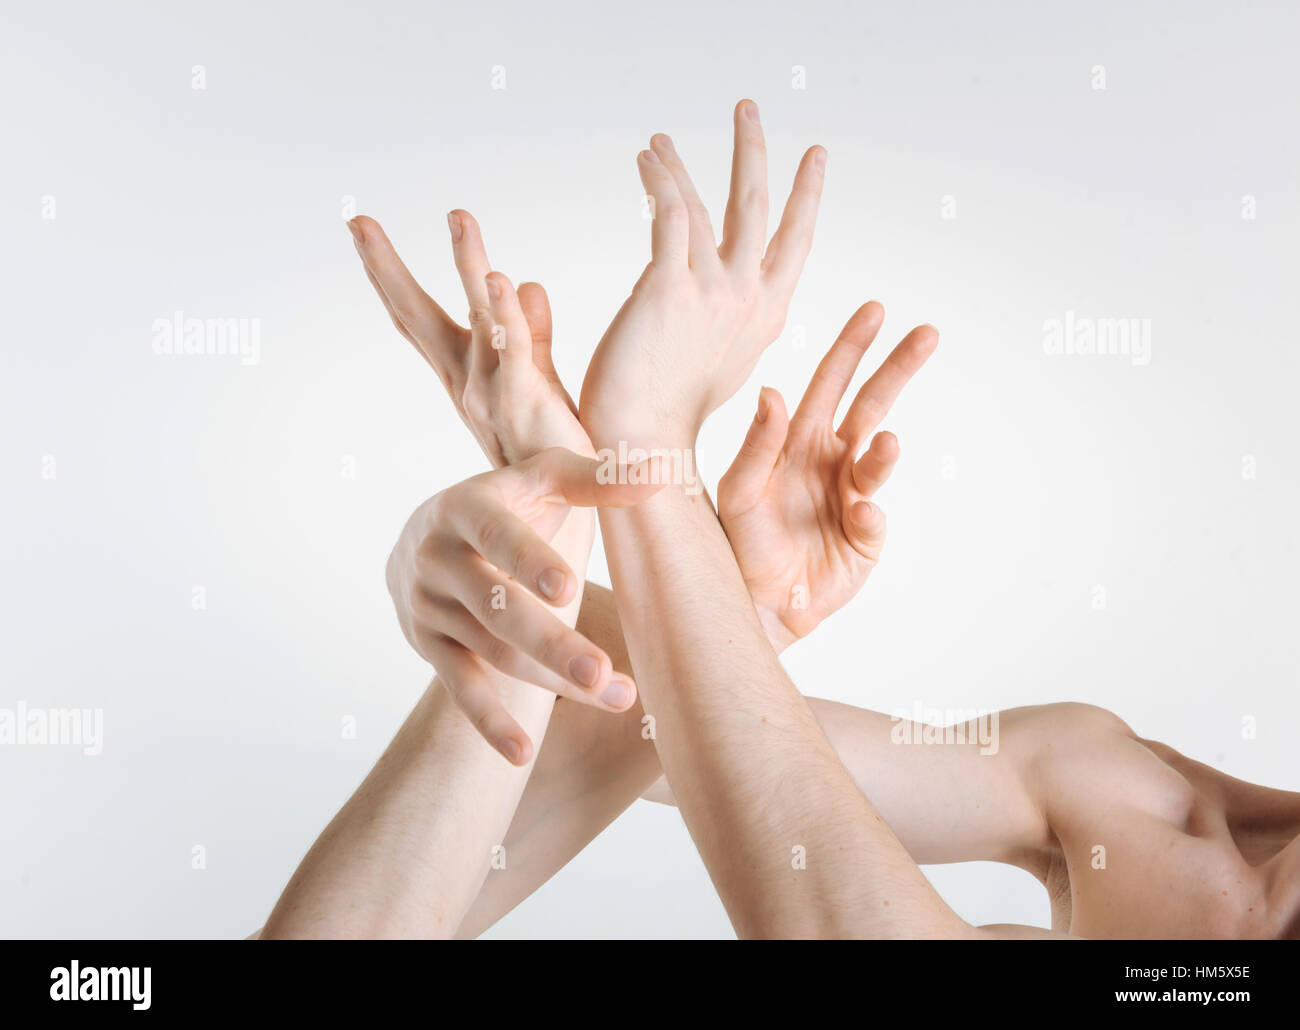 Sophisticated gymnasts hands expressing grace in the studio - Stock Image